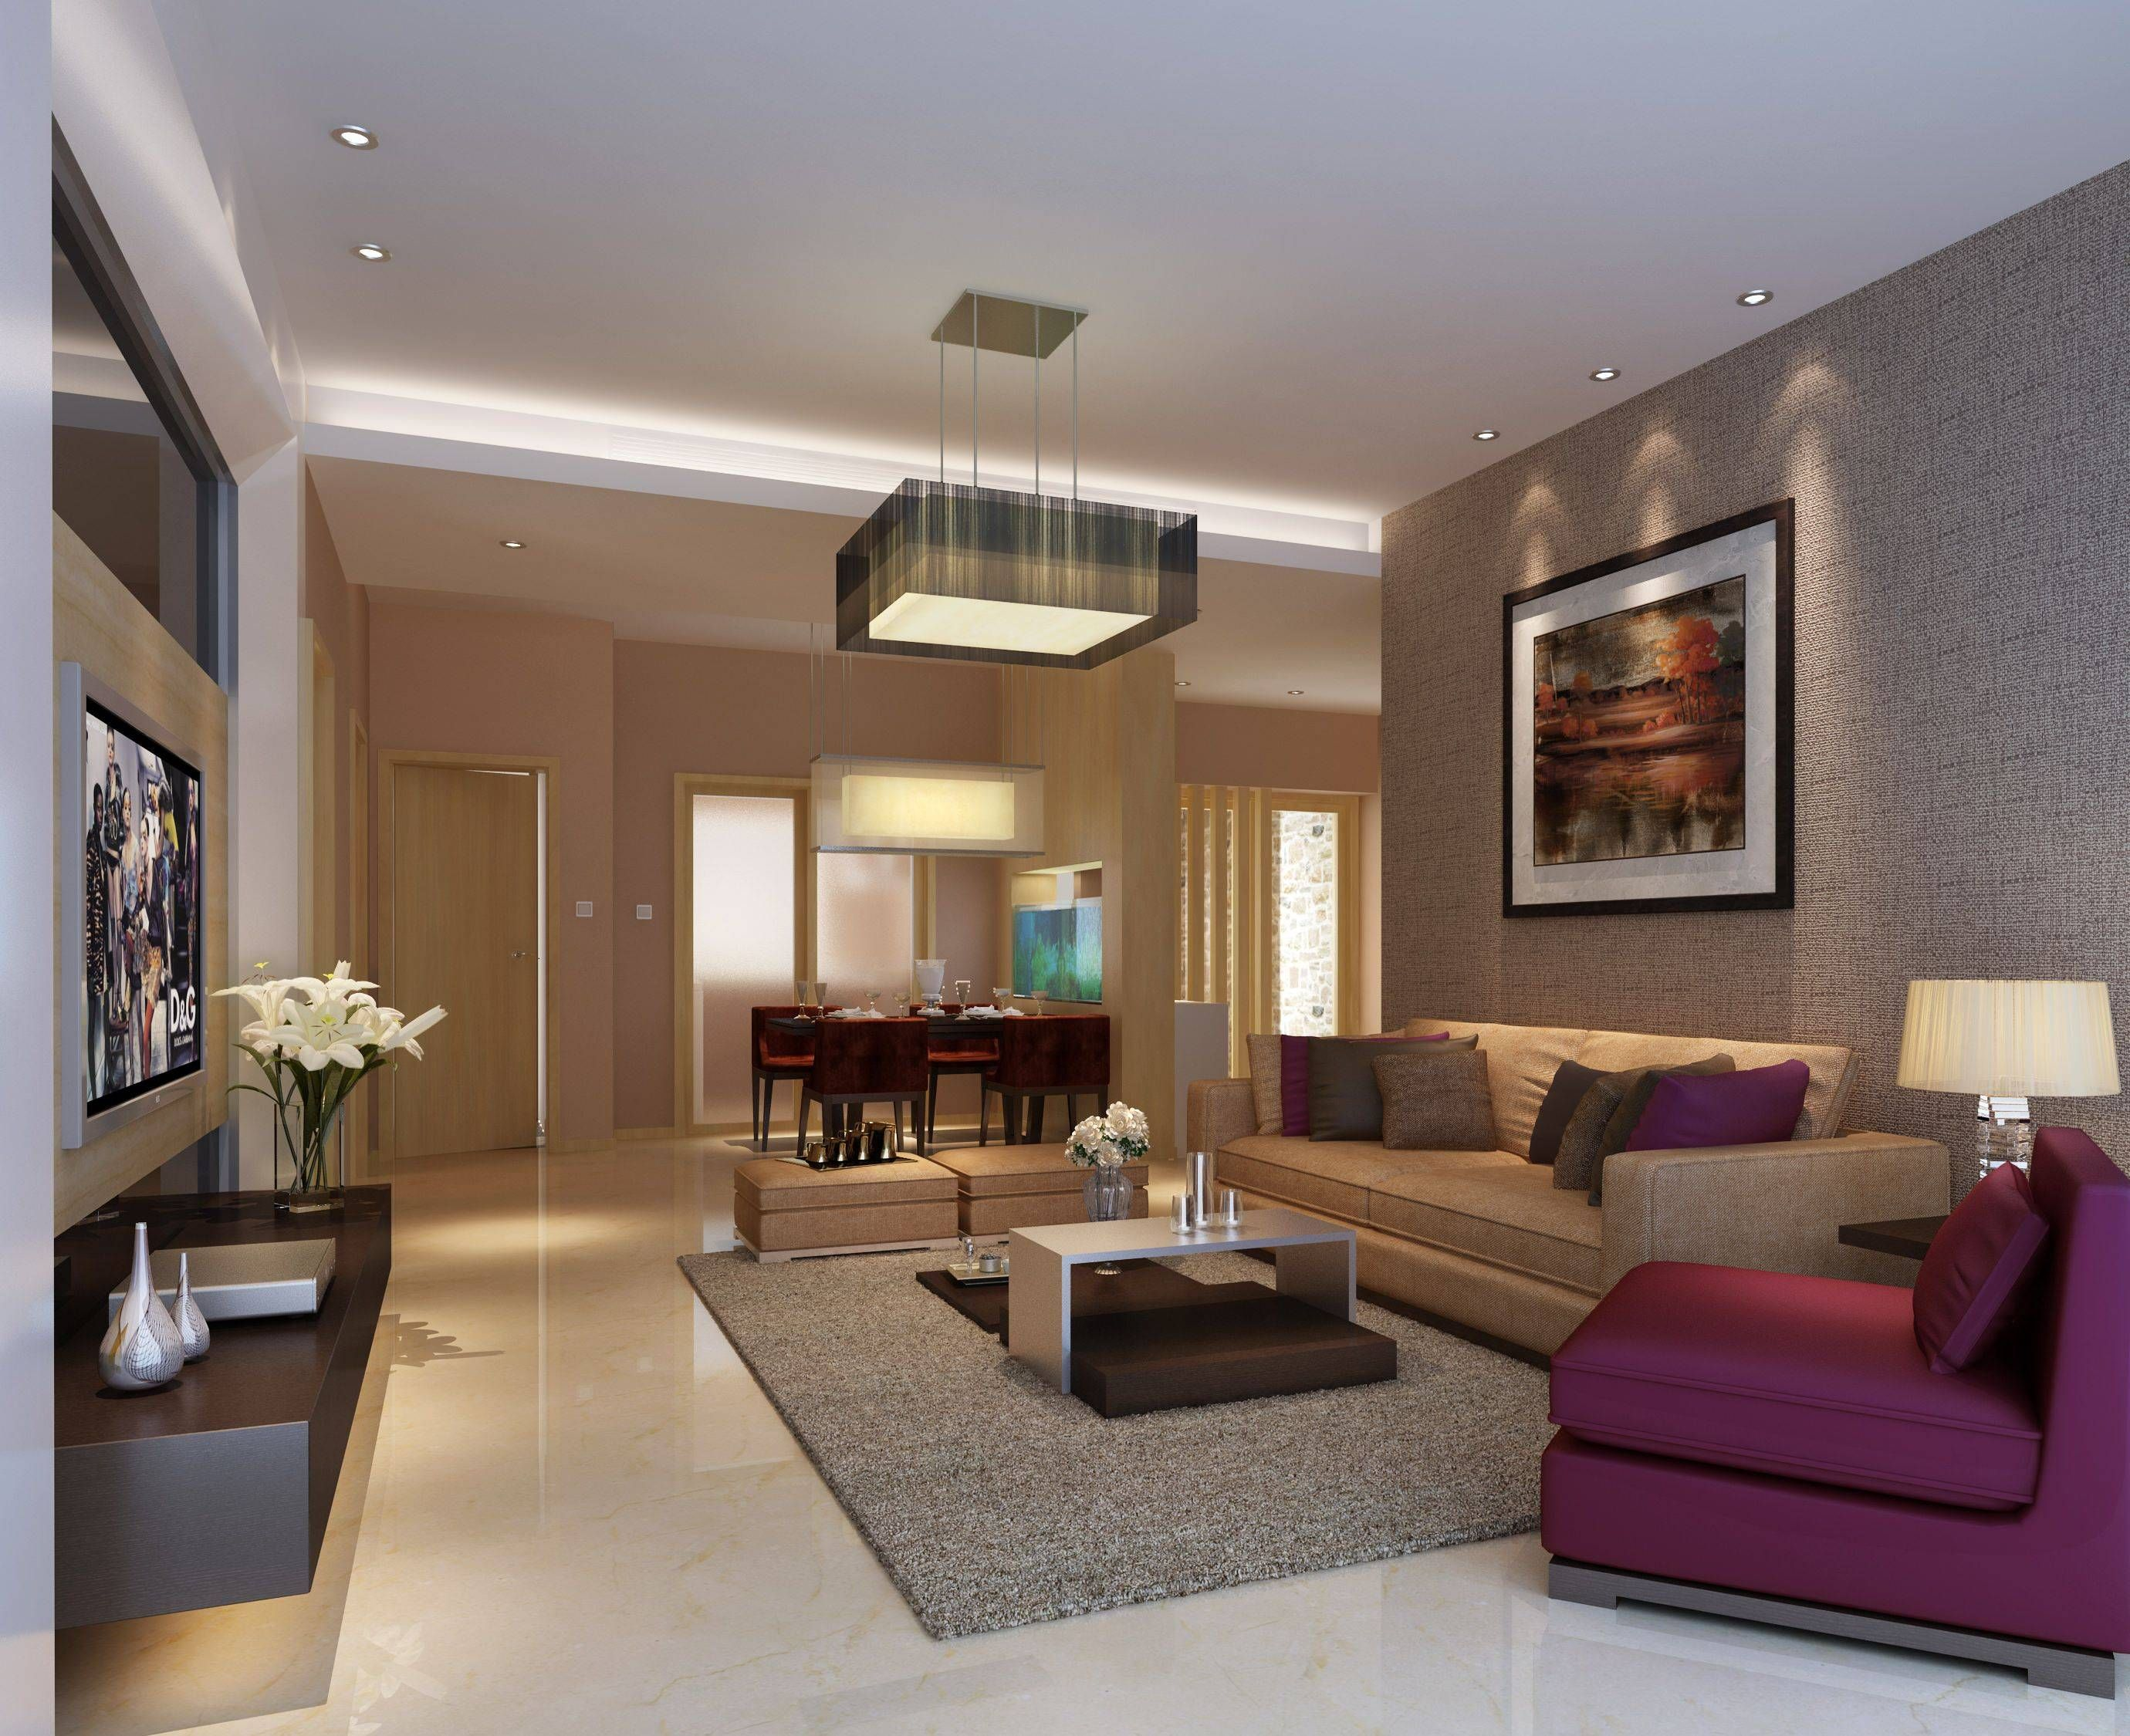 Living Room Ceiling Designs in 2020   Modern casual living ... on Fireplace Casual Living id=54942